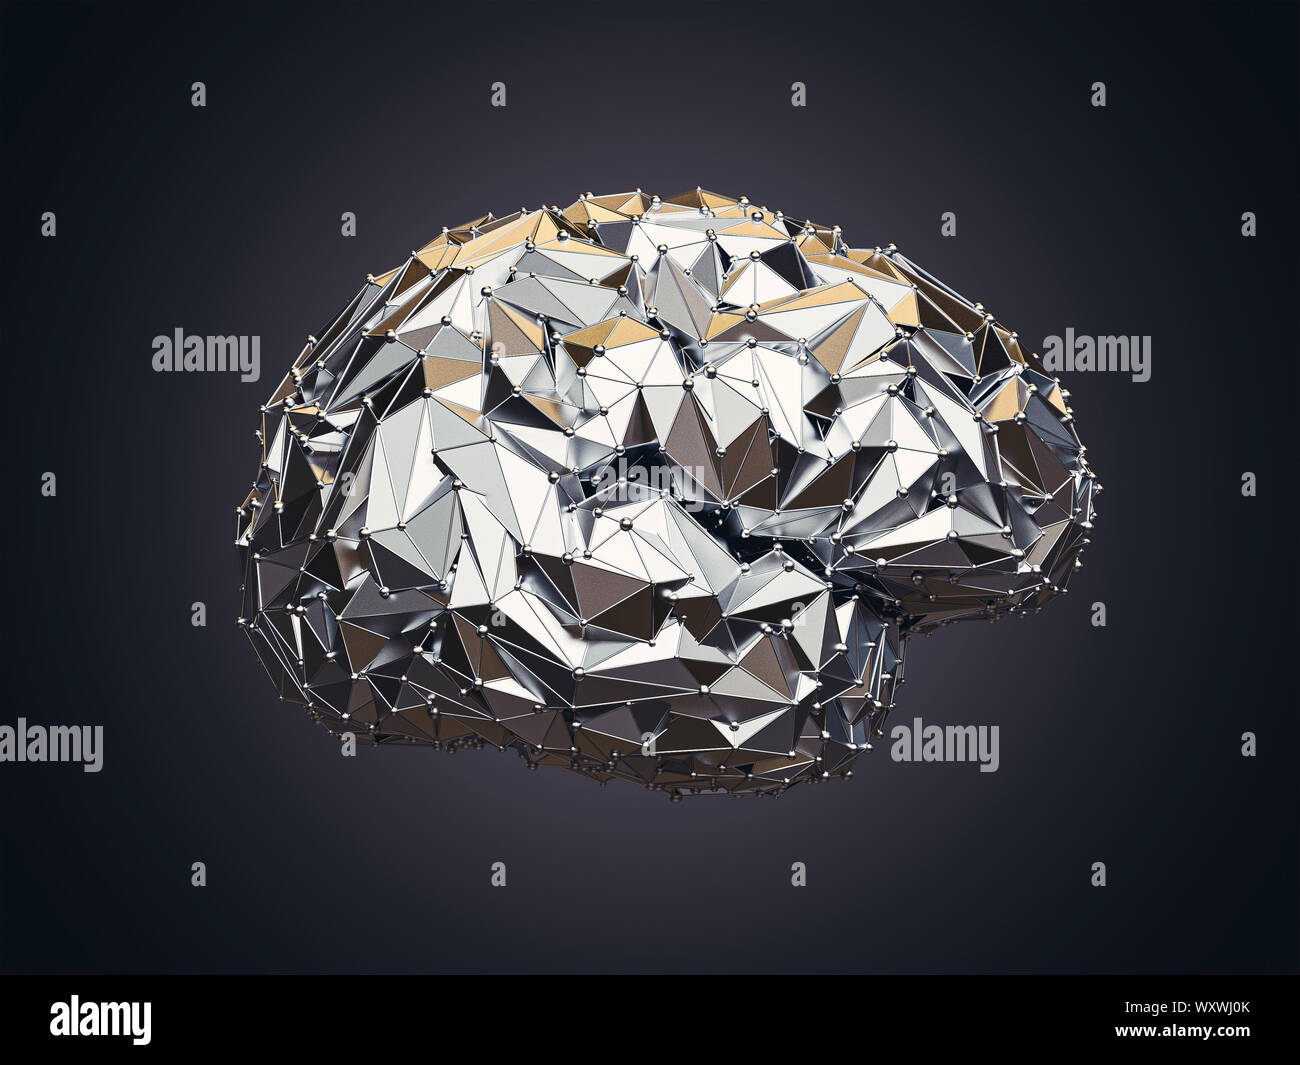 3d illustration of human low poly brain made of metal, AI concept Stock Photo